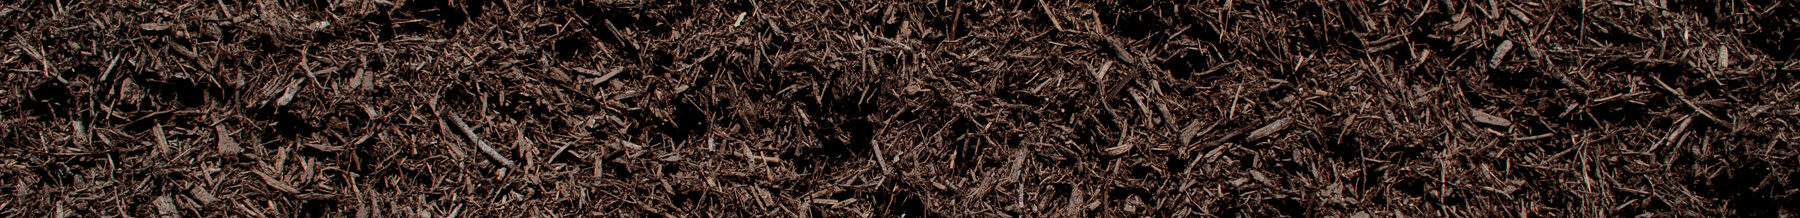 close up wide shot of brown dyed mulch